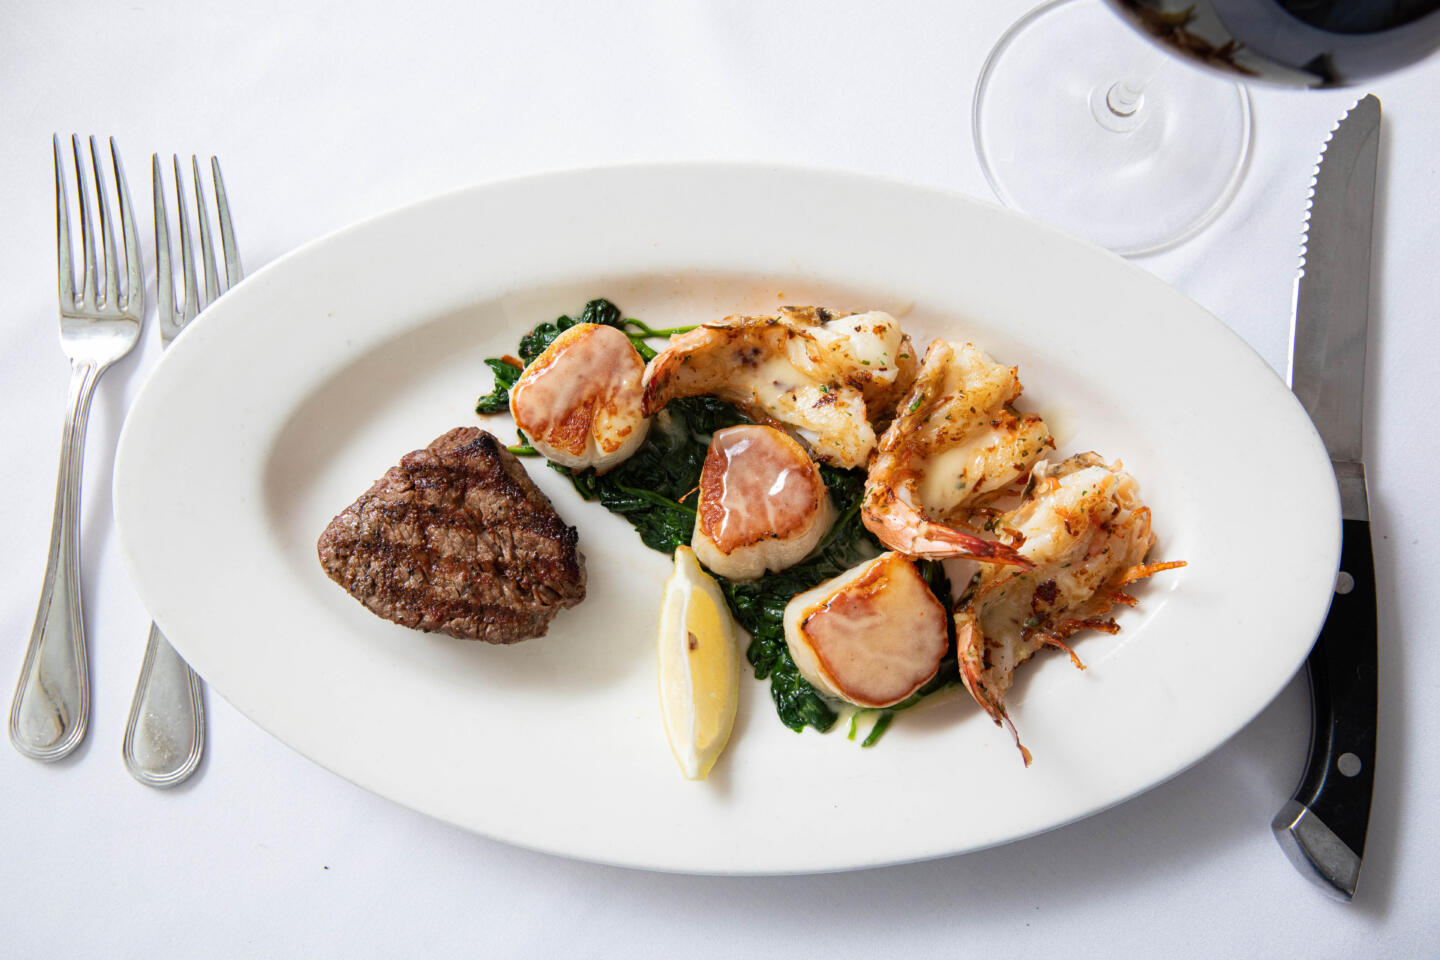 Shaws scallops and steak and shrimp